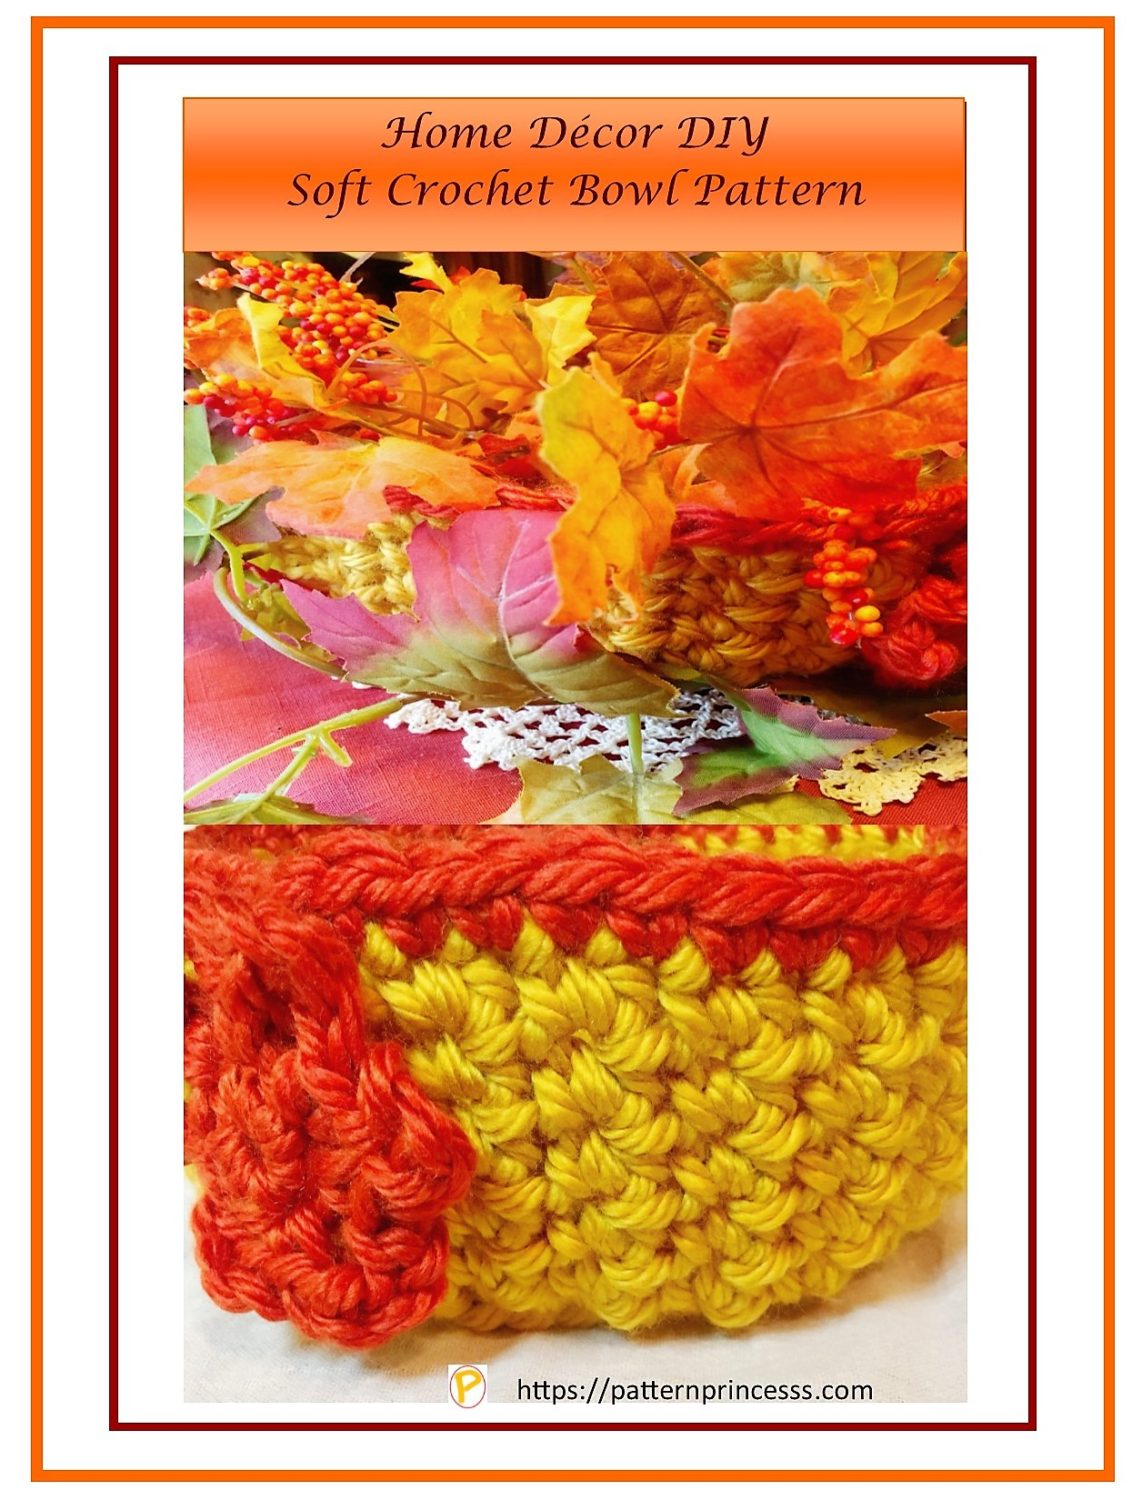 Home Decor DIY Soft Crochet Bowl Pattern 1